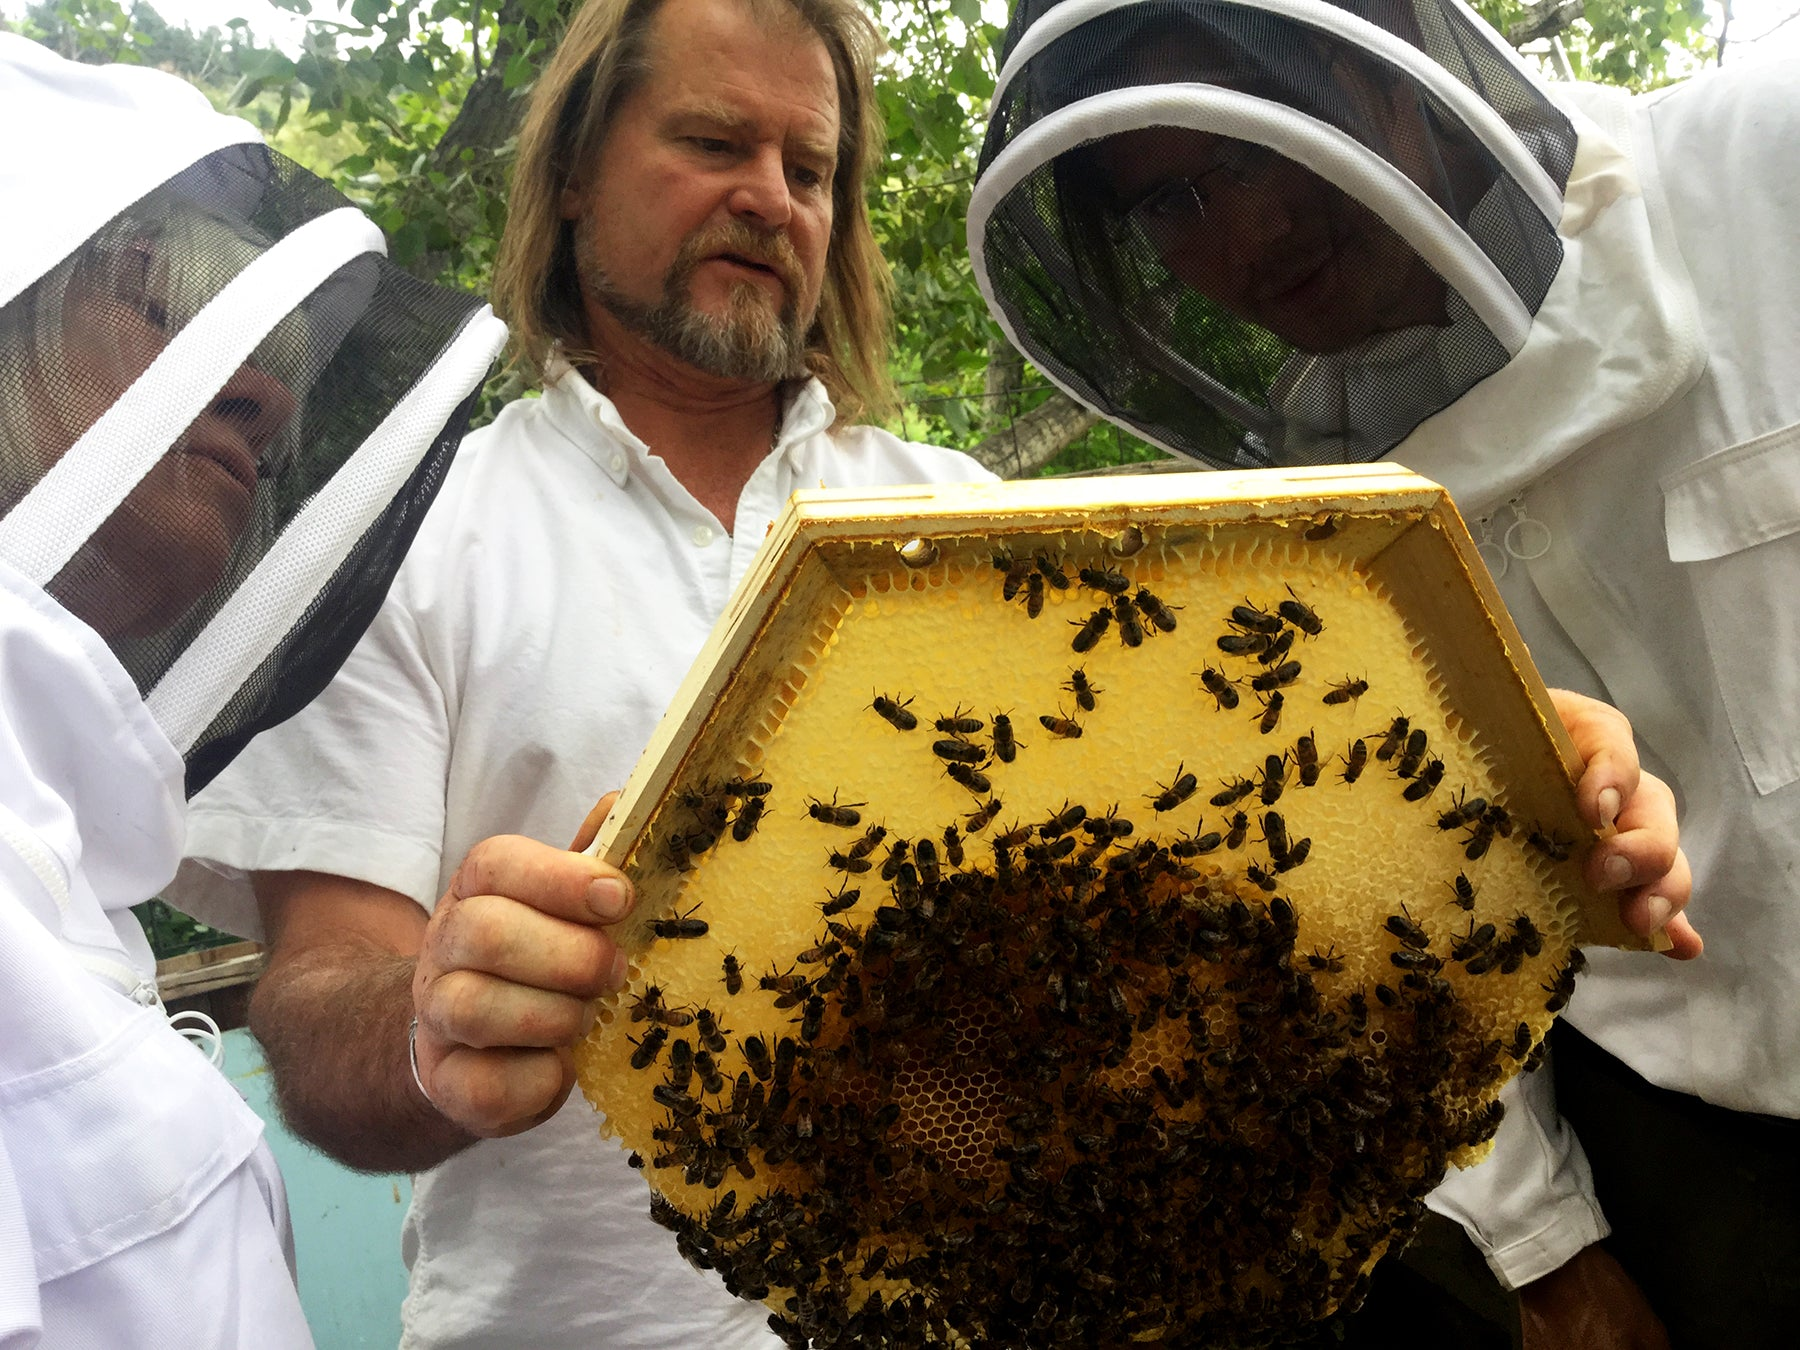 Corwin Bell and Bee gurdian beekeepers inpsecing a Cathedral Hive brood comb